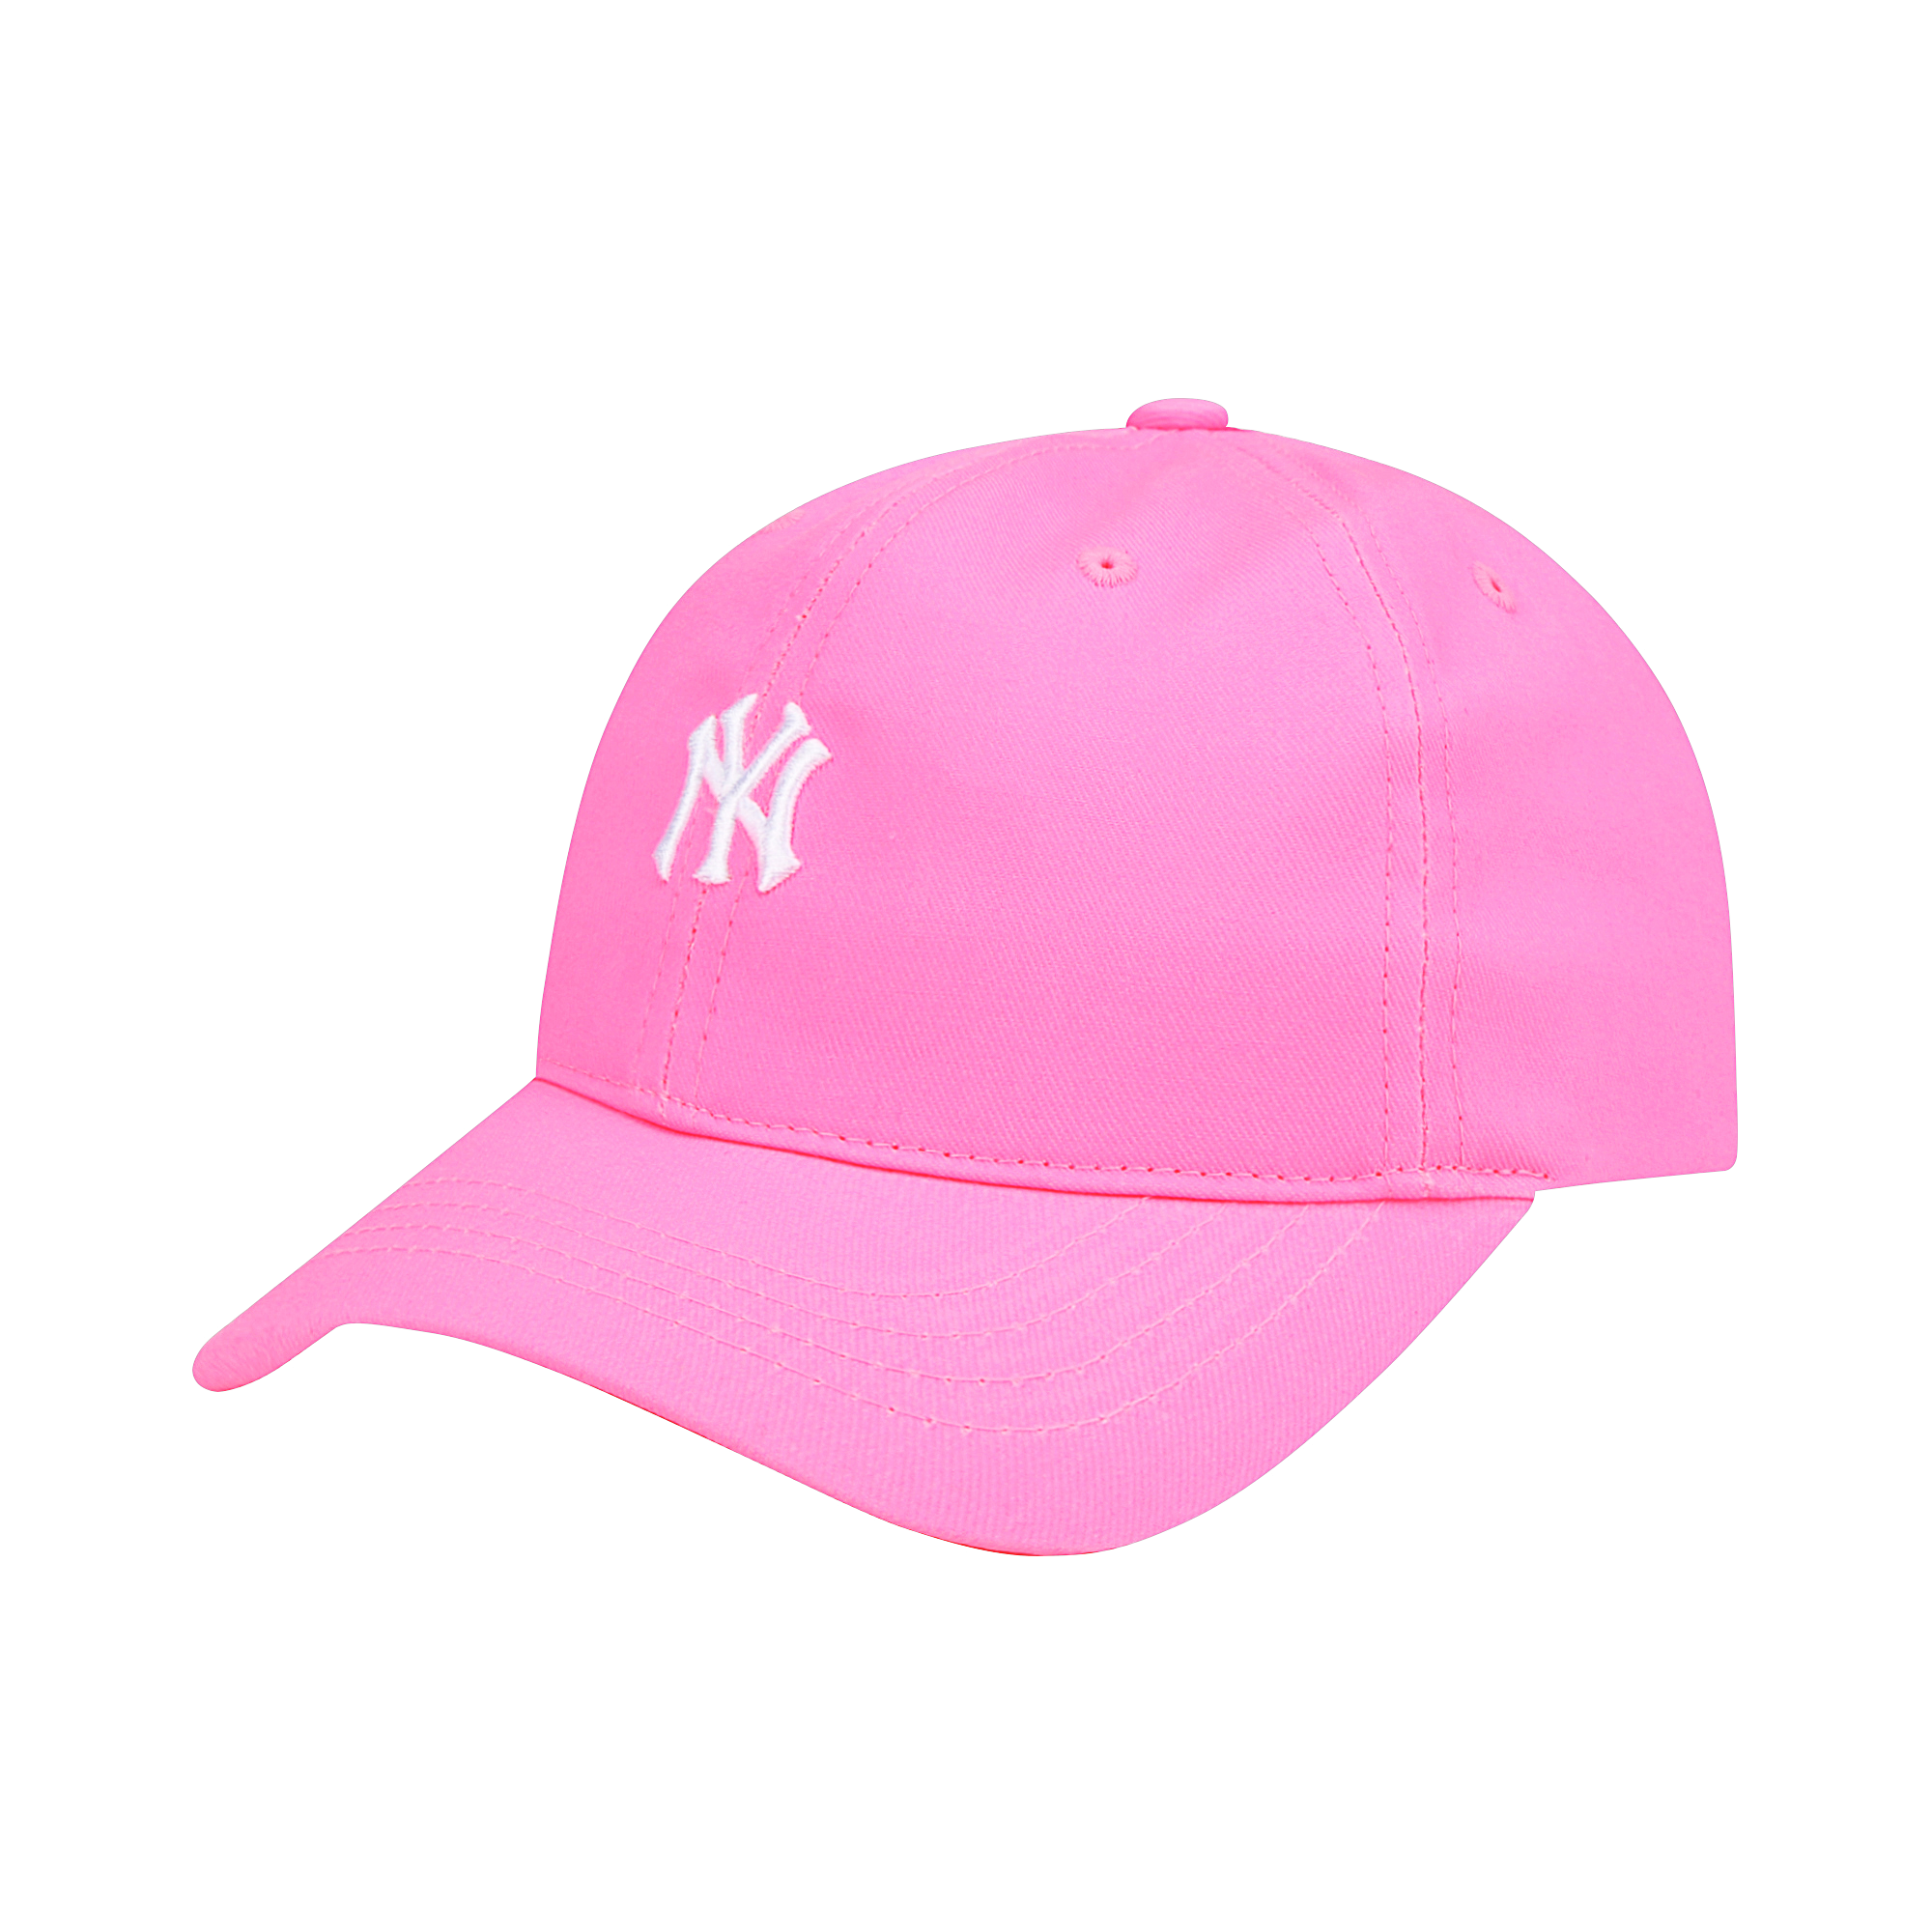 NEW YORK YANKEES NEOS NEON SMALL LOGO CURVED CAP